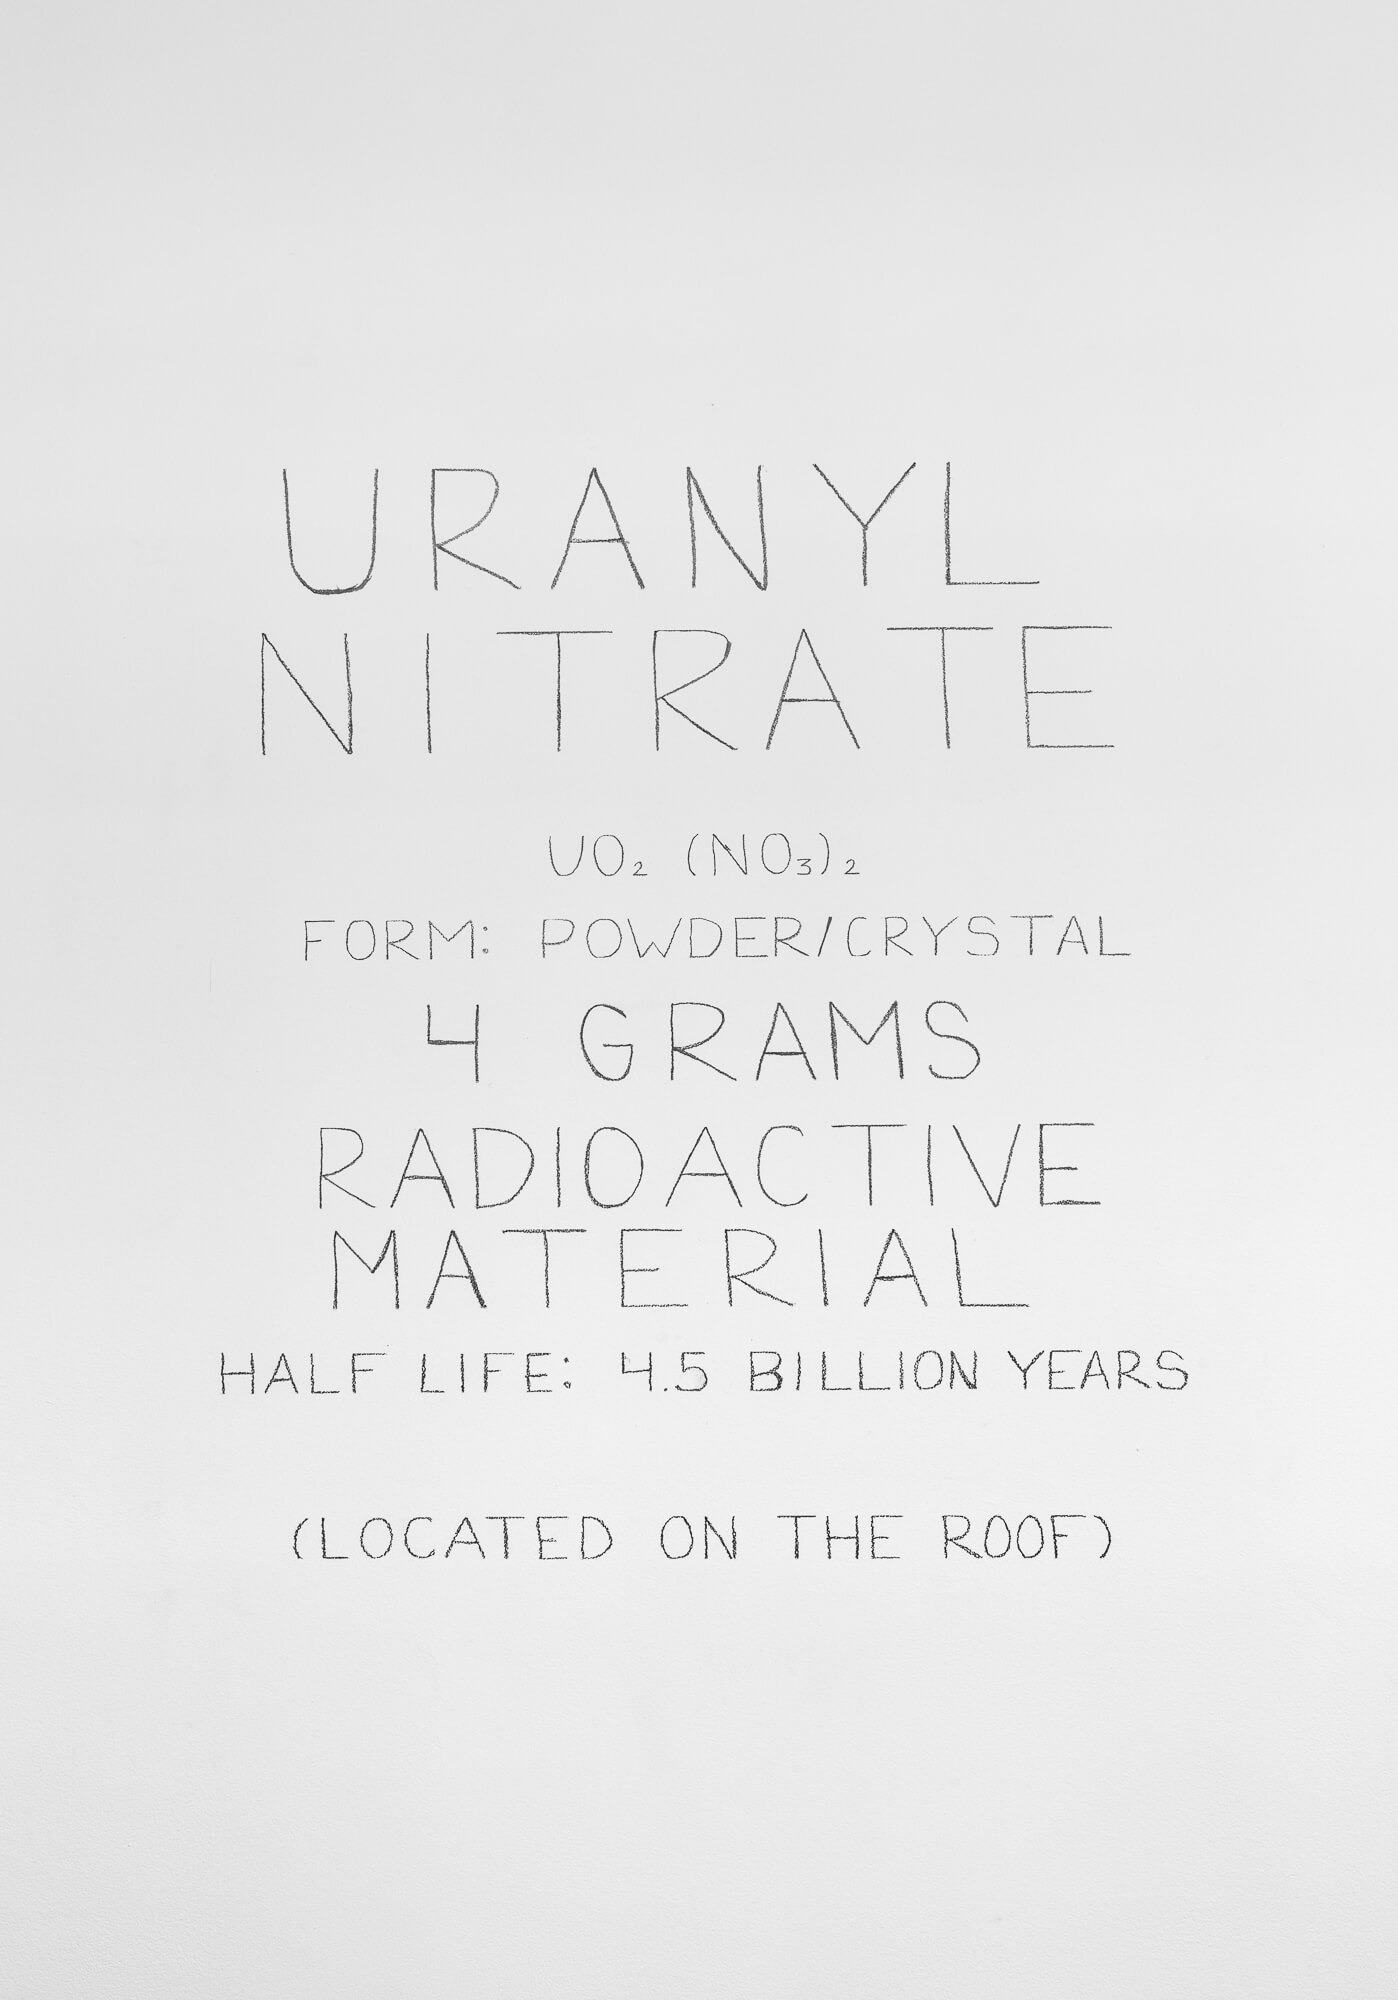 Robert Barry Uranyl Nitrate (UO2(NO3)2) Harald Szeemann Grandfather A Pioneer Like Us